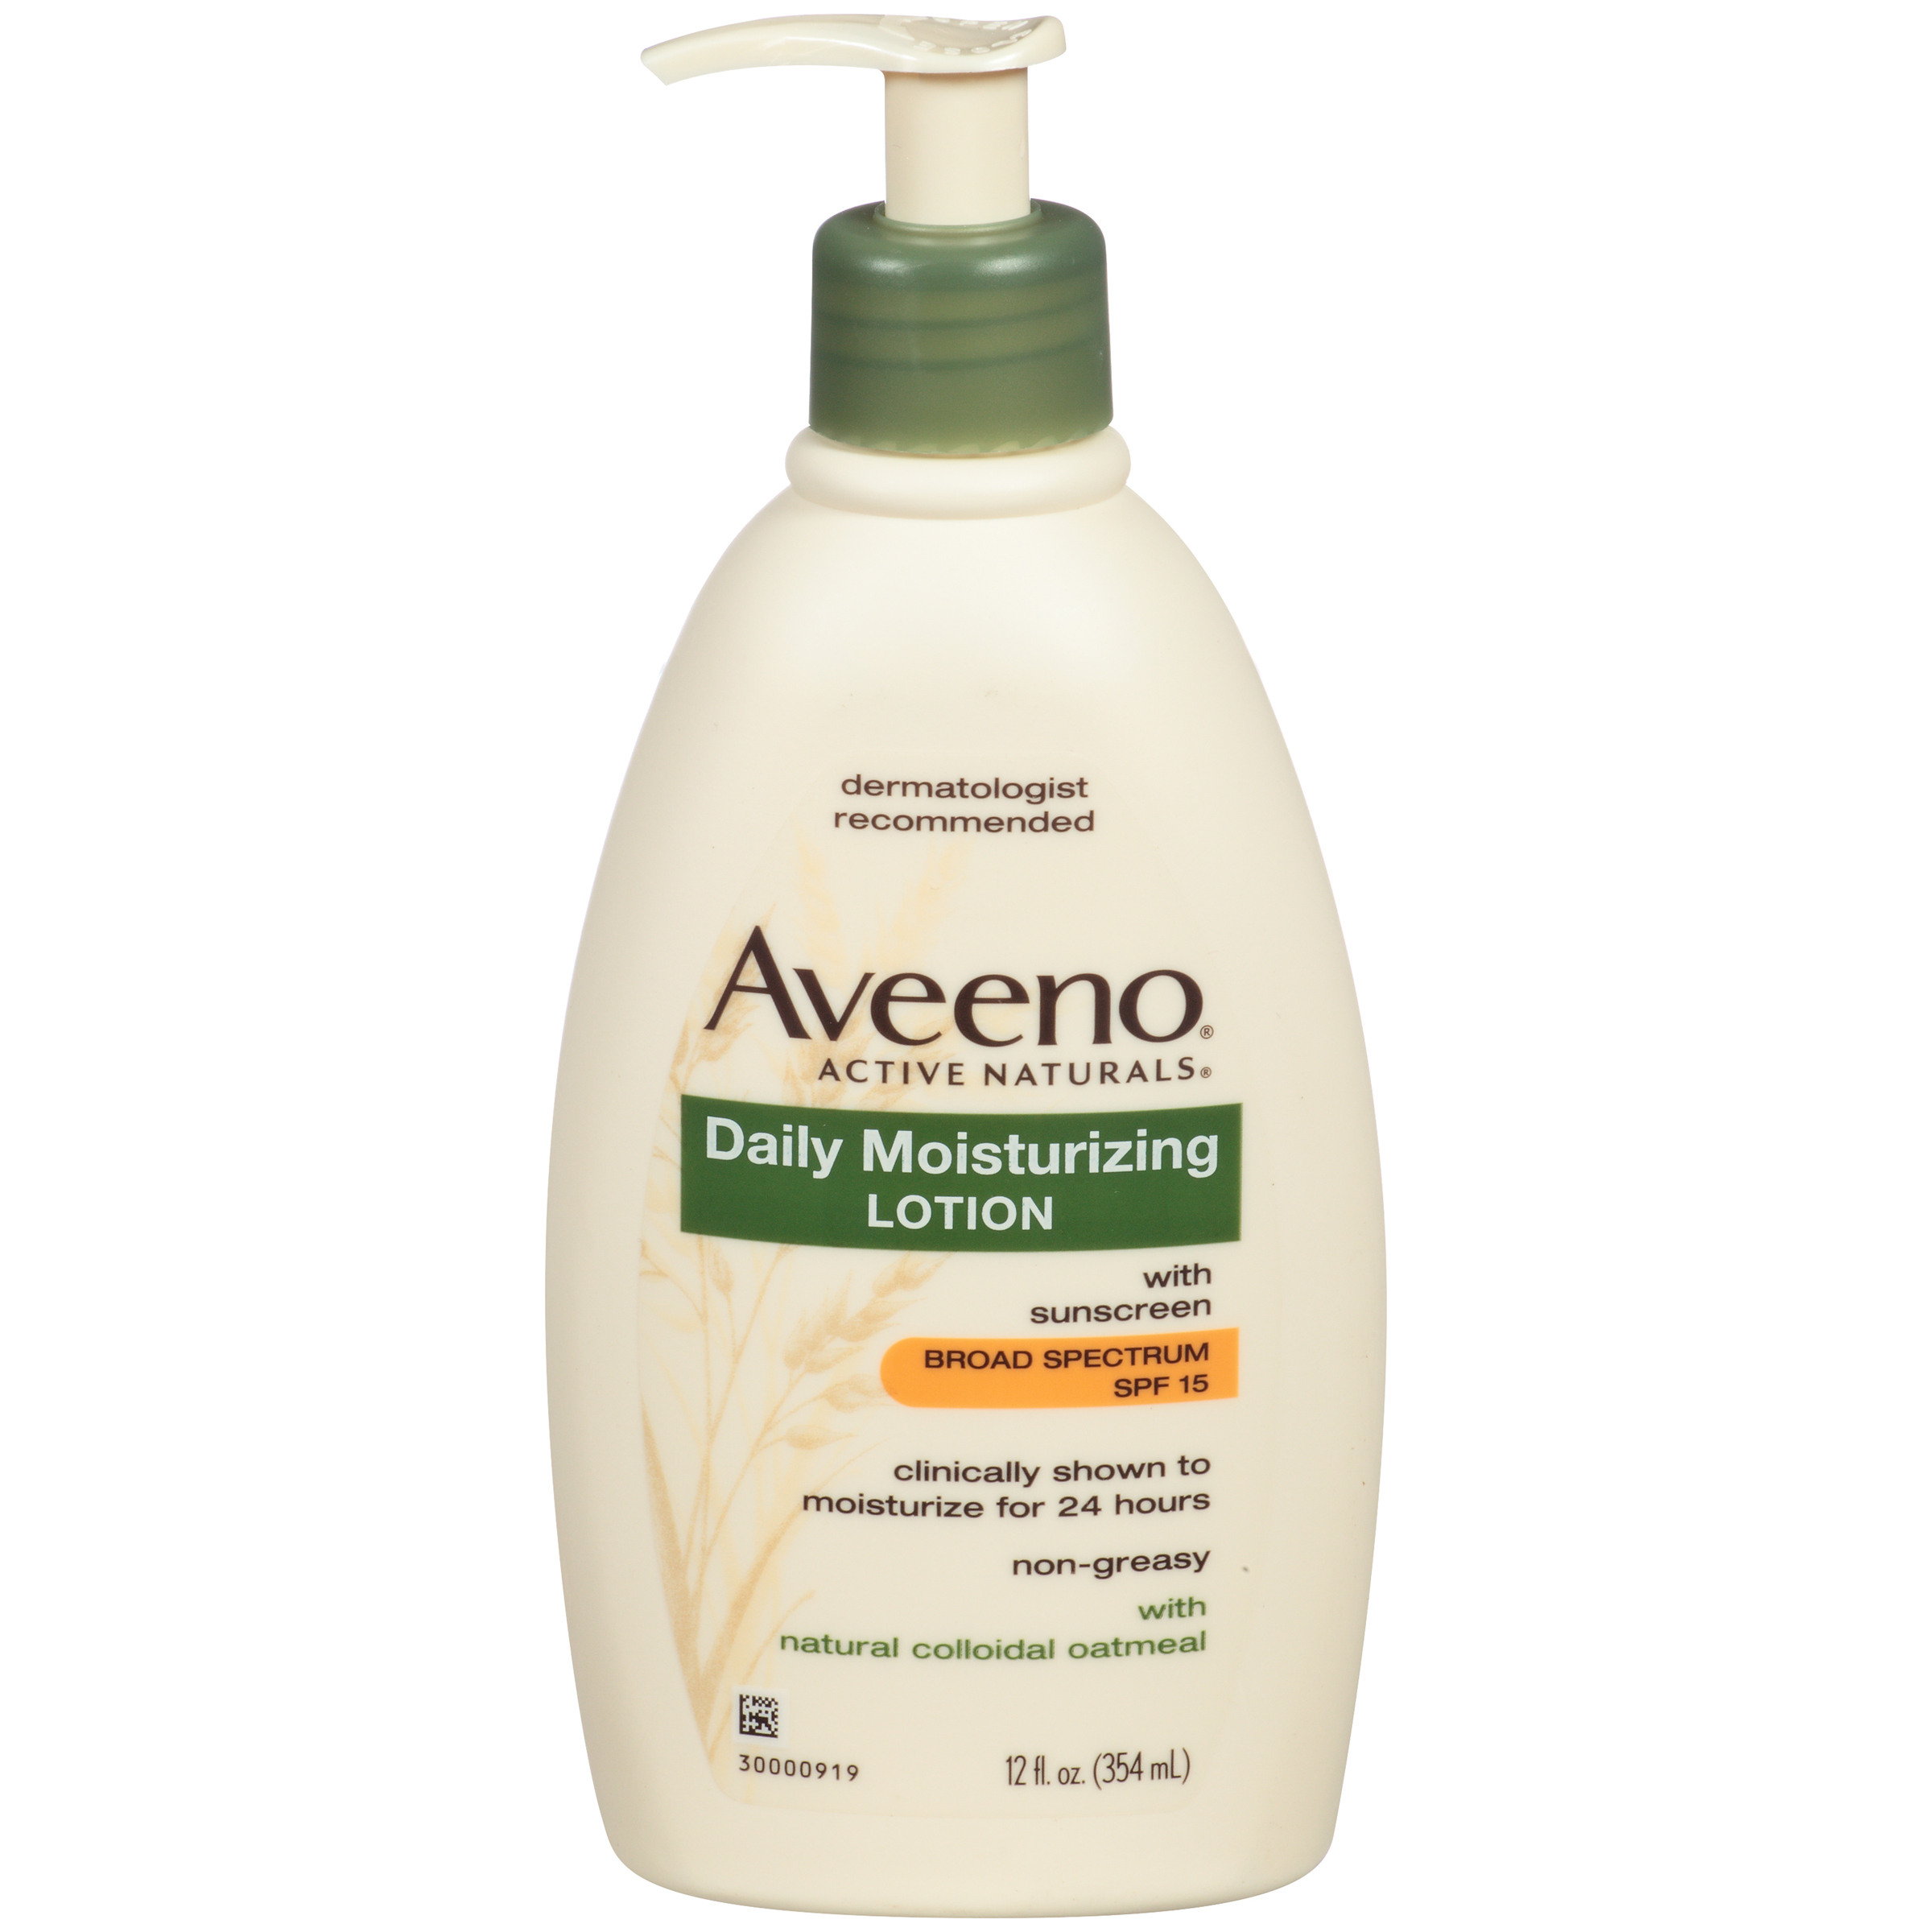 Aveeno Active Naturals Lotion Daily Moisturizing With